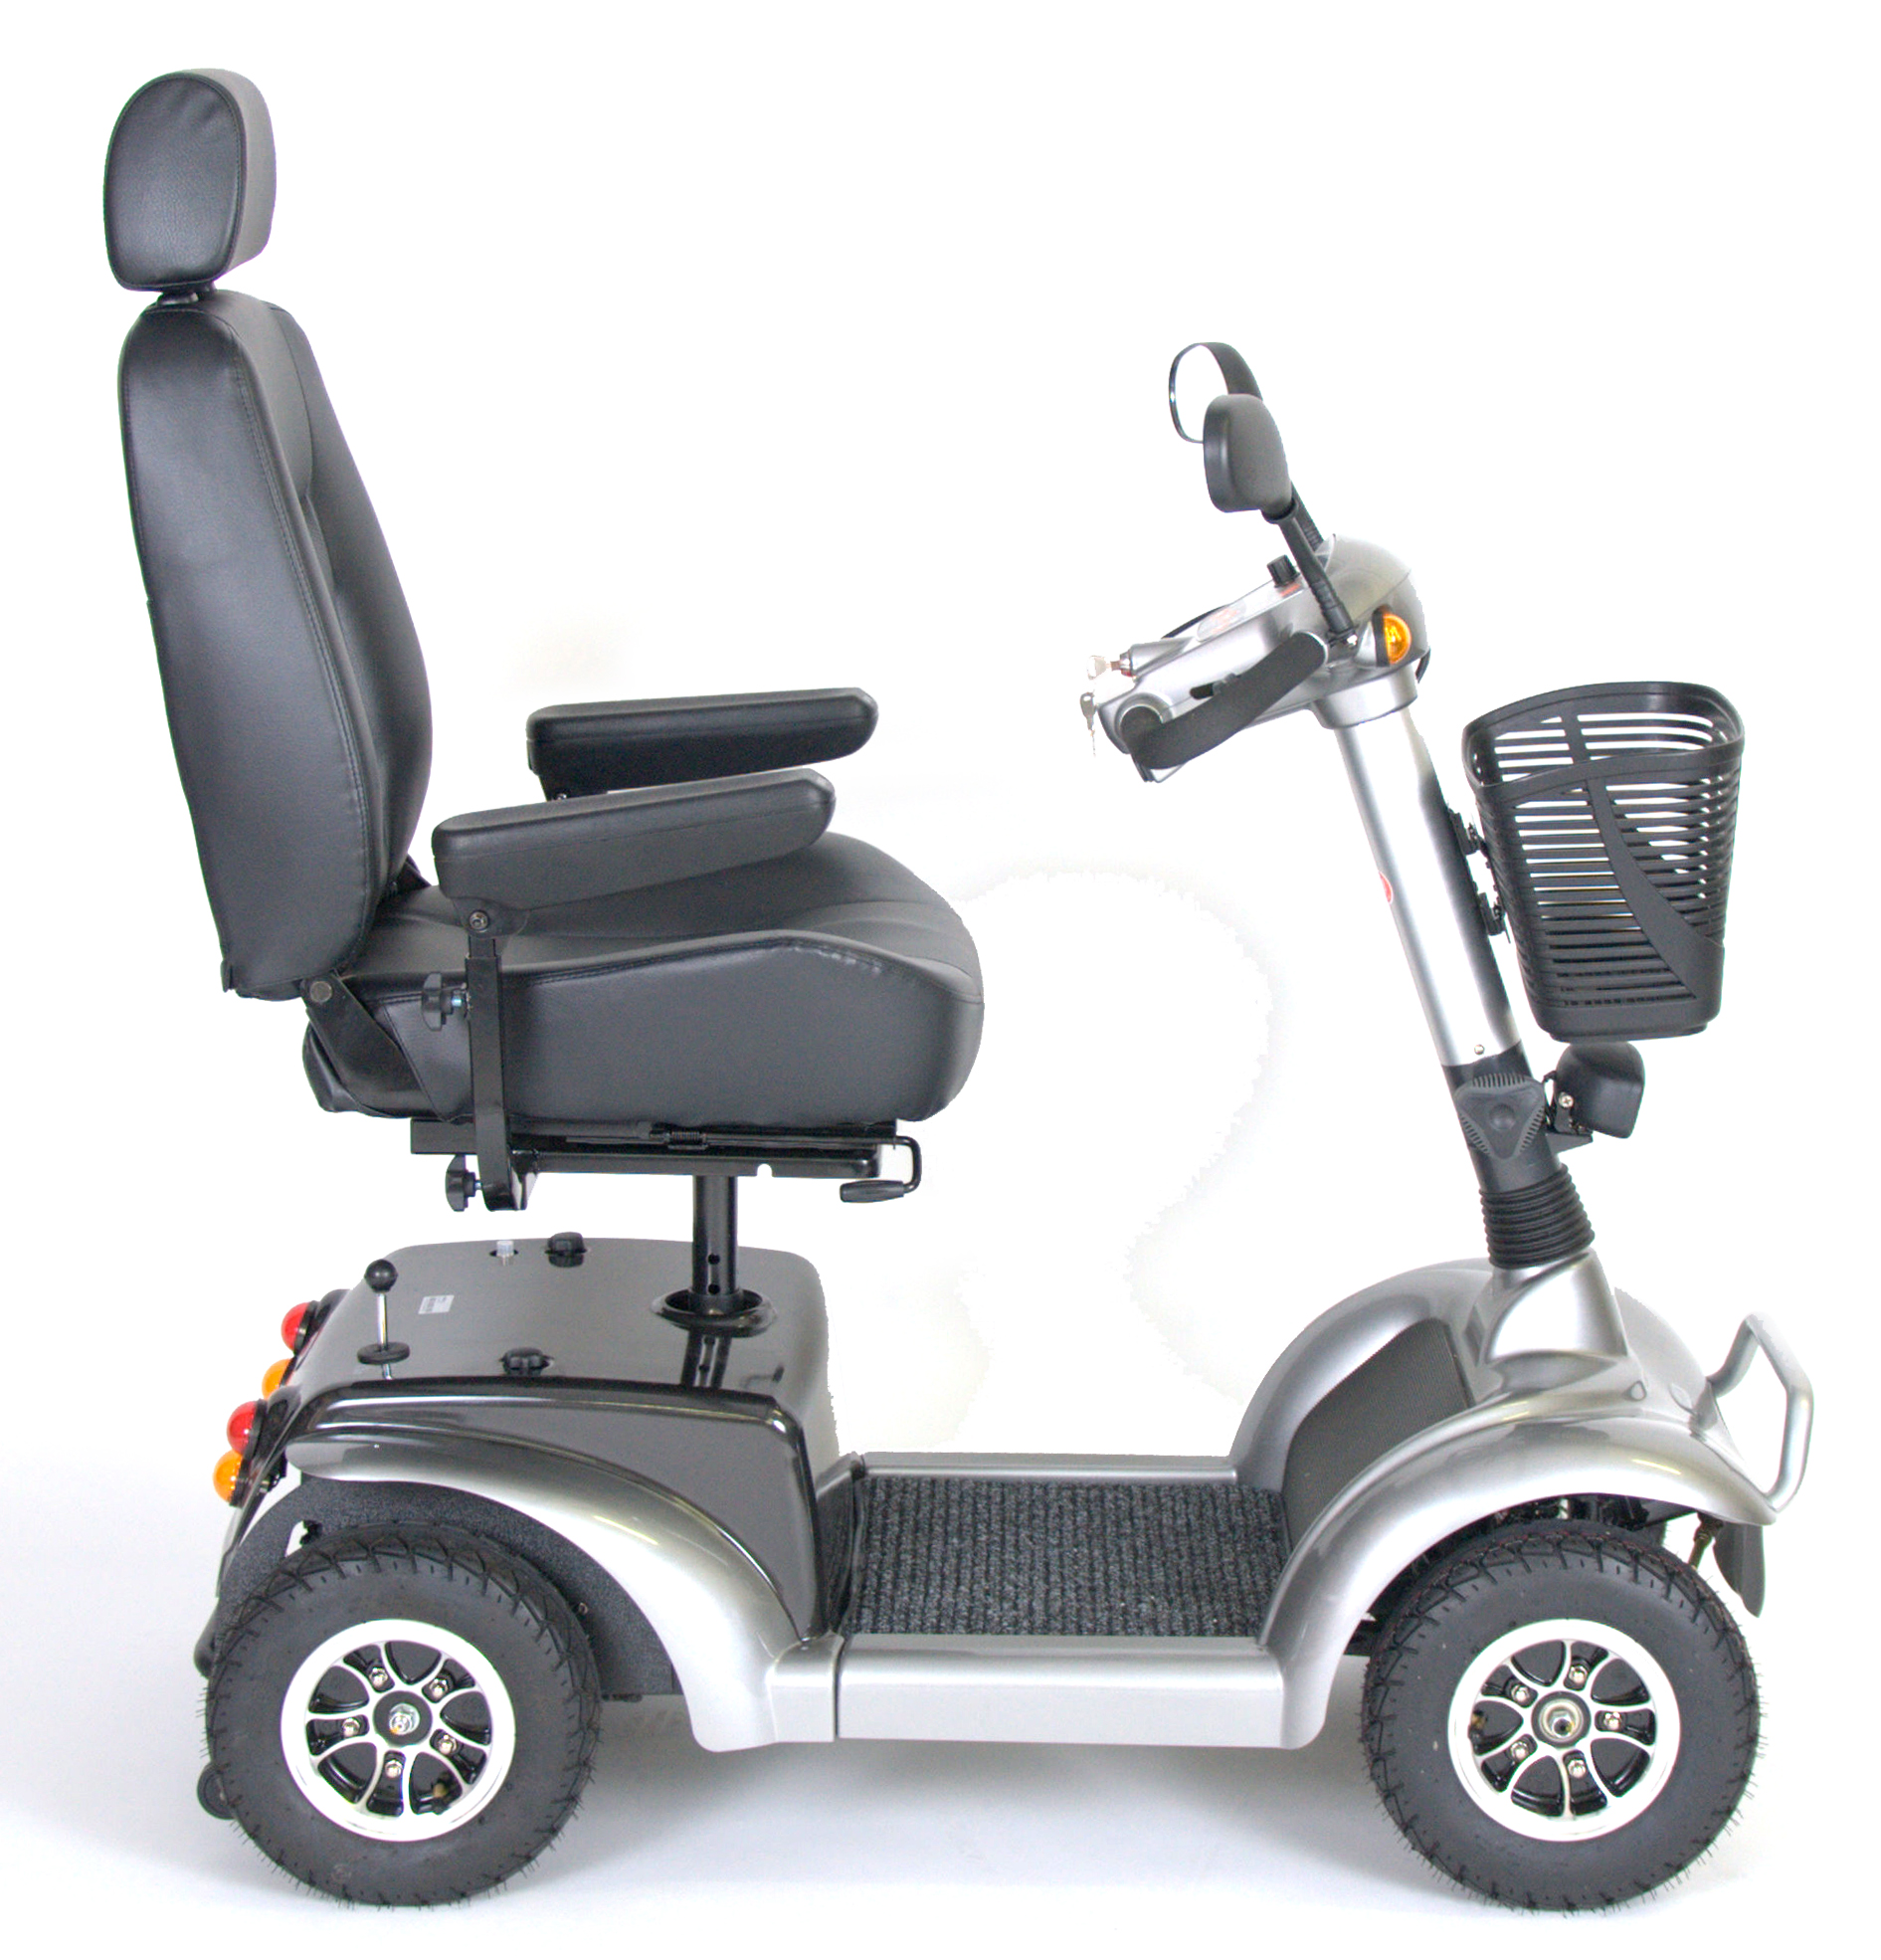 Prowler Mobility Scooter 4 Wheel Power Scooters Prowler3410mg20cs Drive Medical